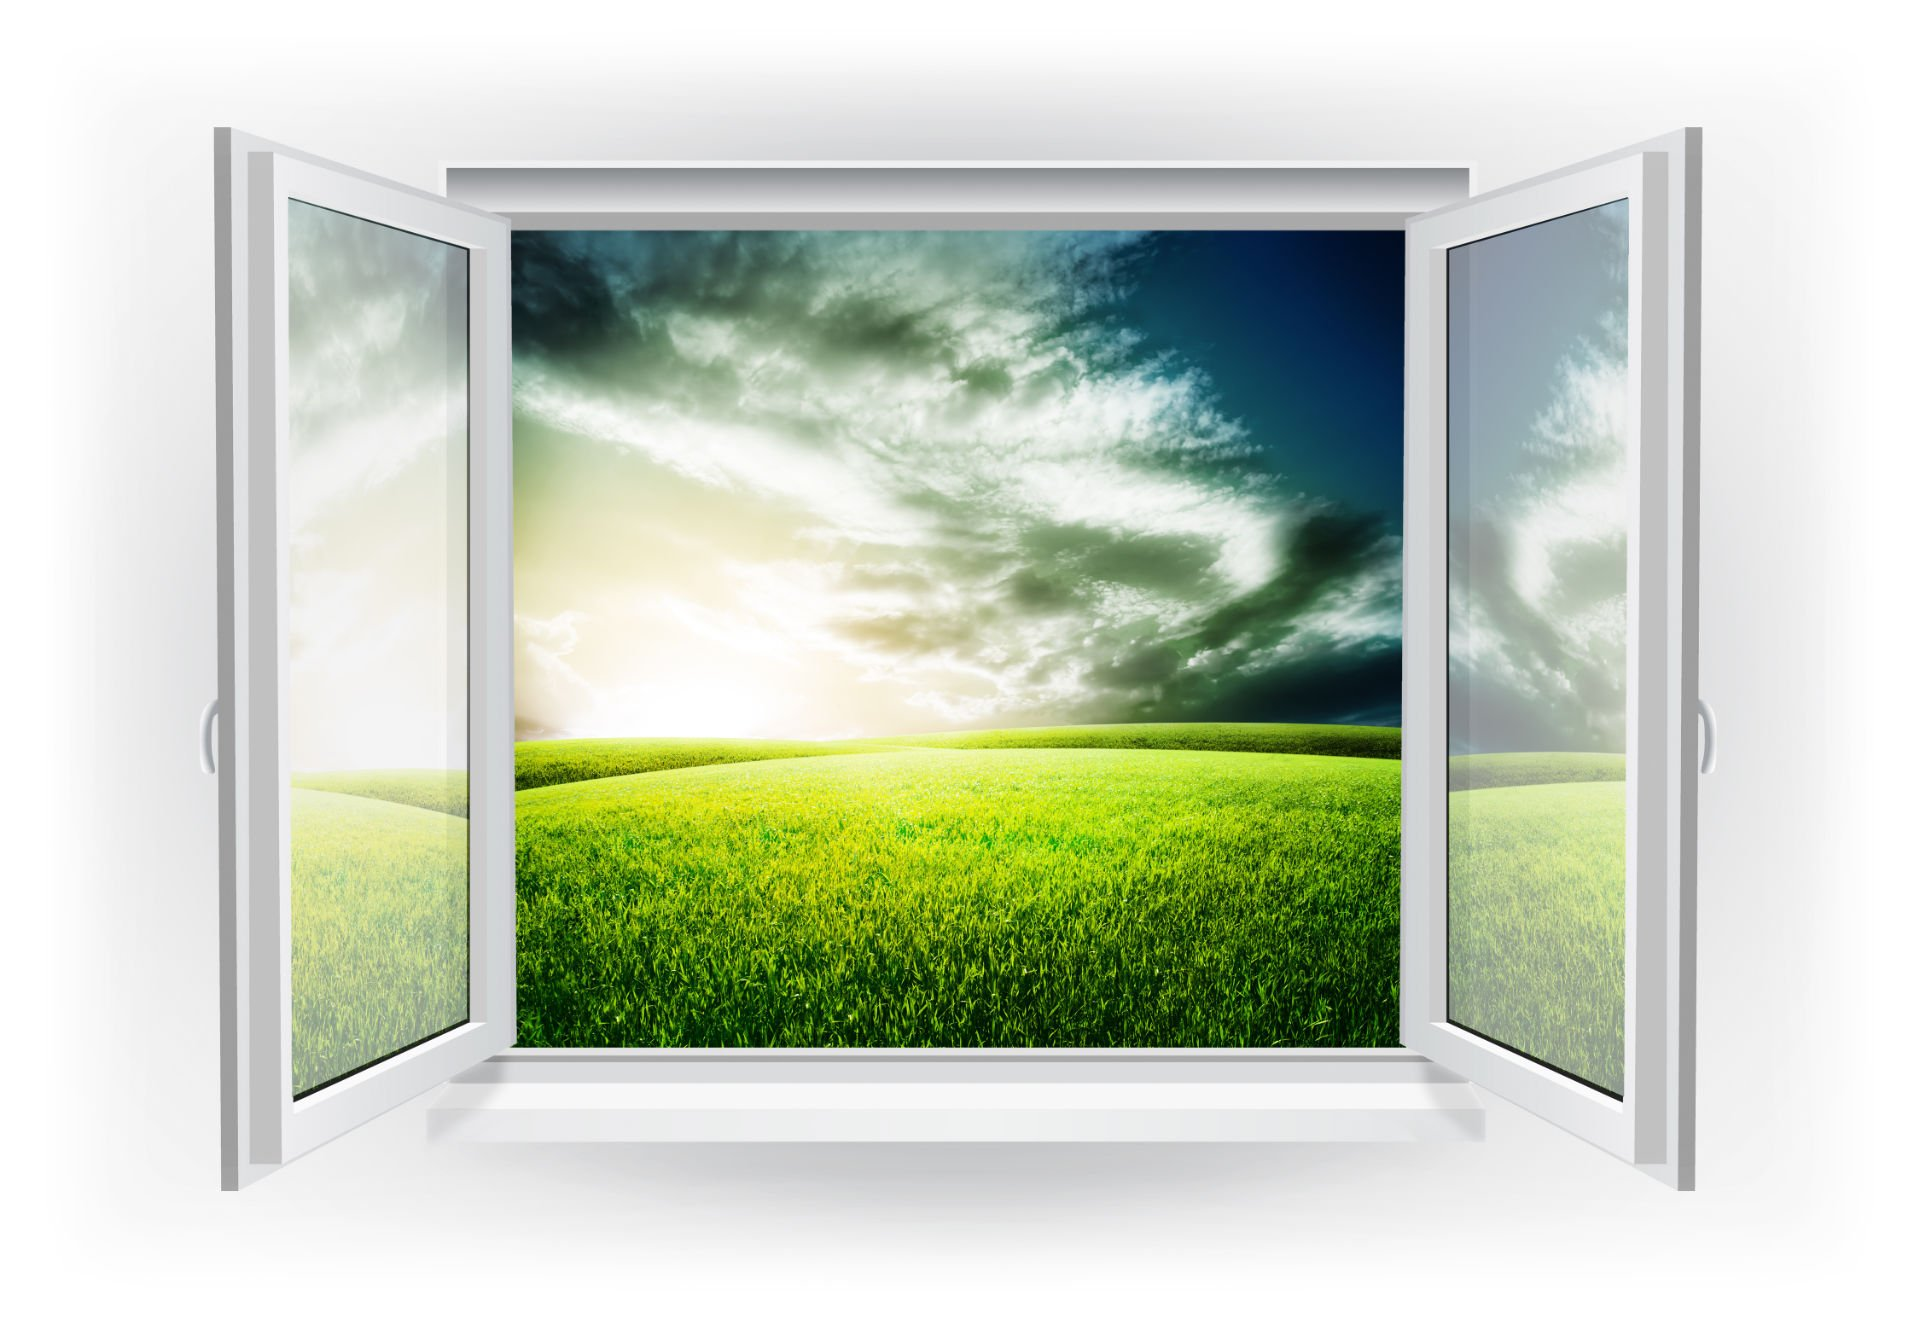 Northwest Windows Installs beautiful, functional windows for your home or office